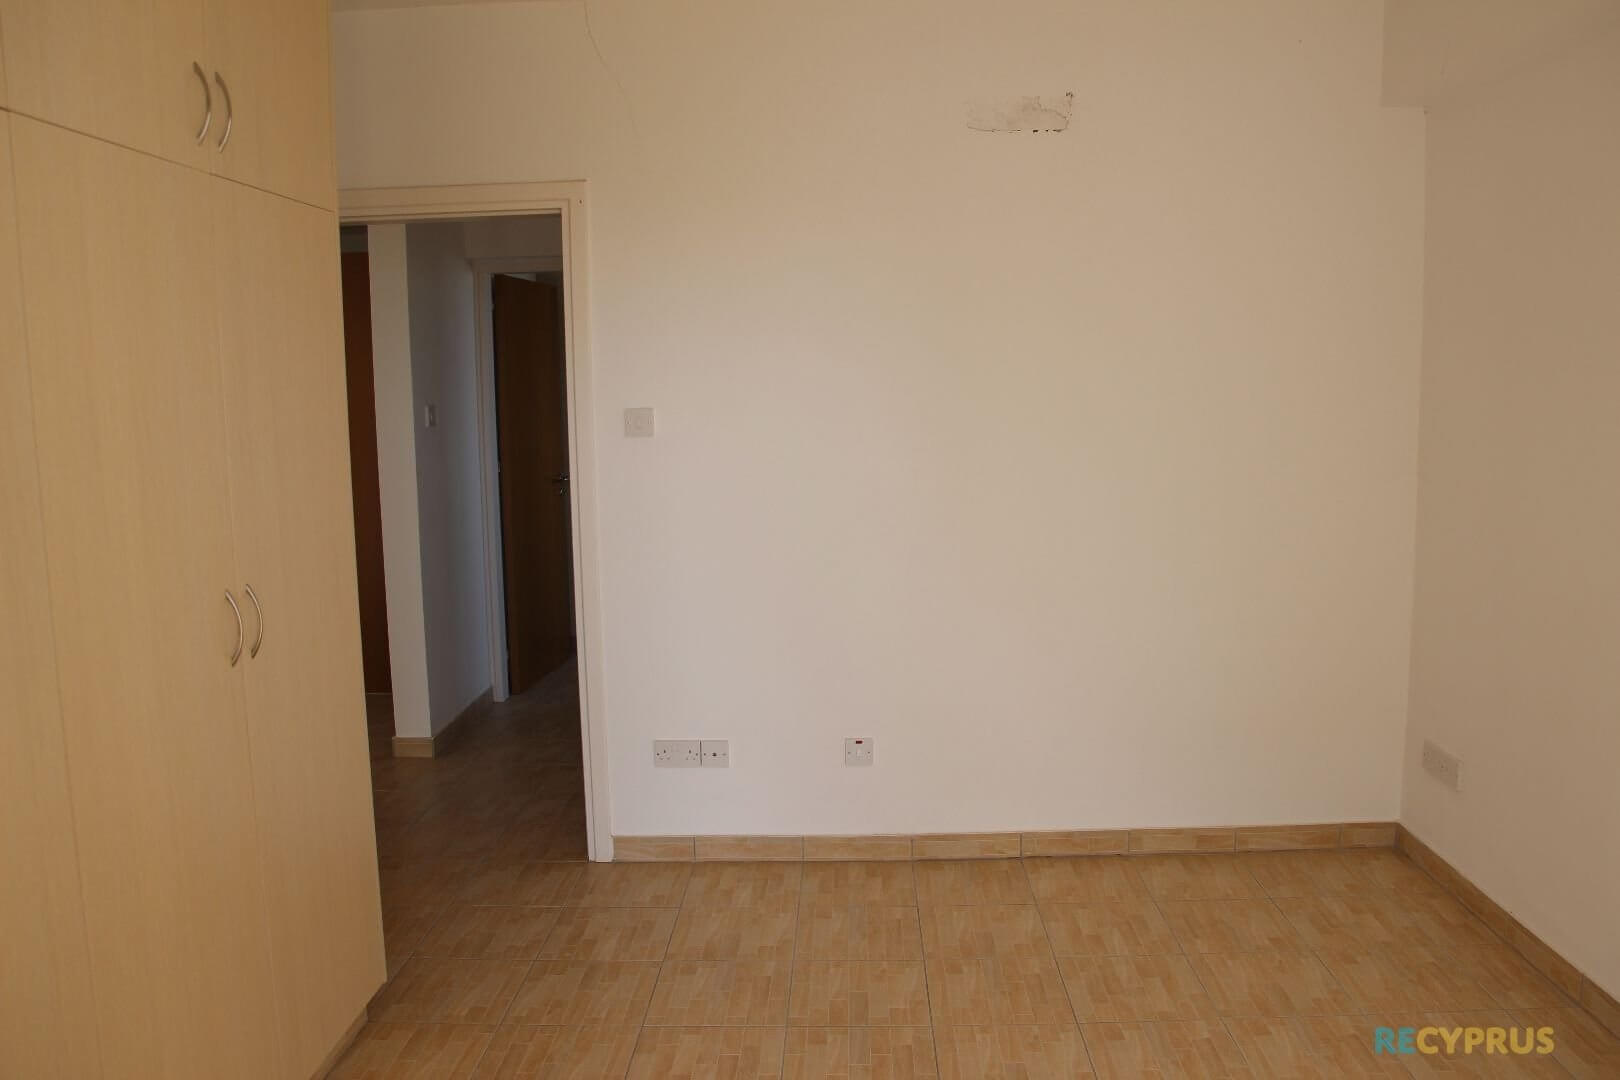 Apartment for sale Kapparis Famagusta Cyprus 7 3519